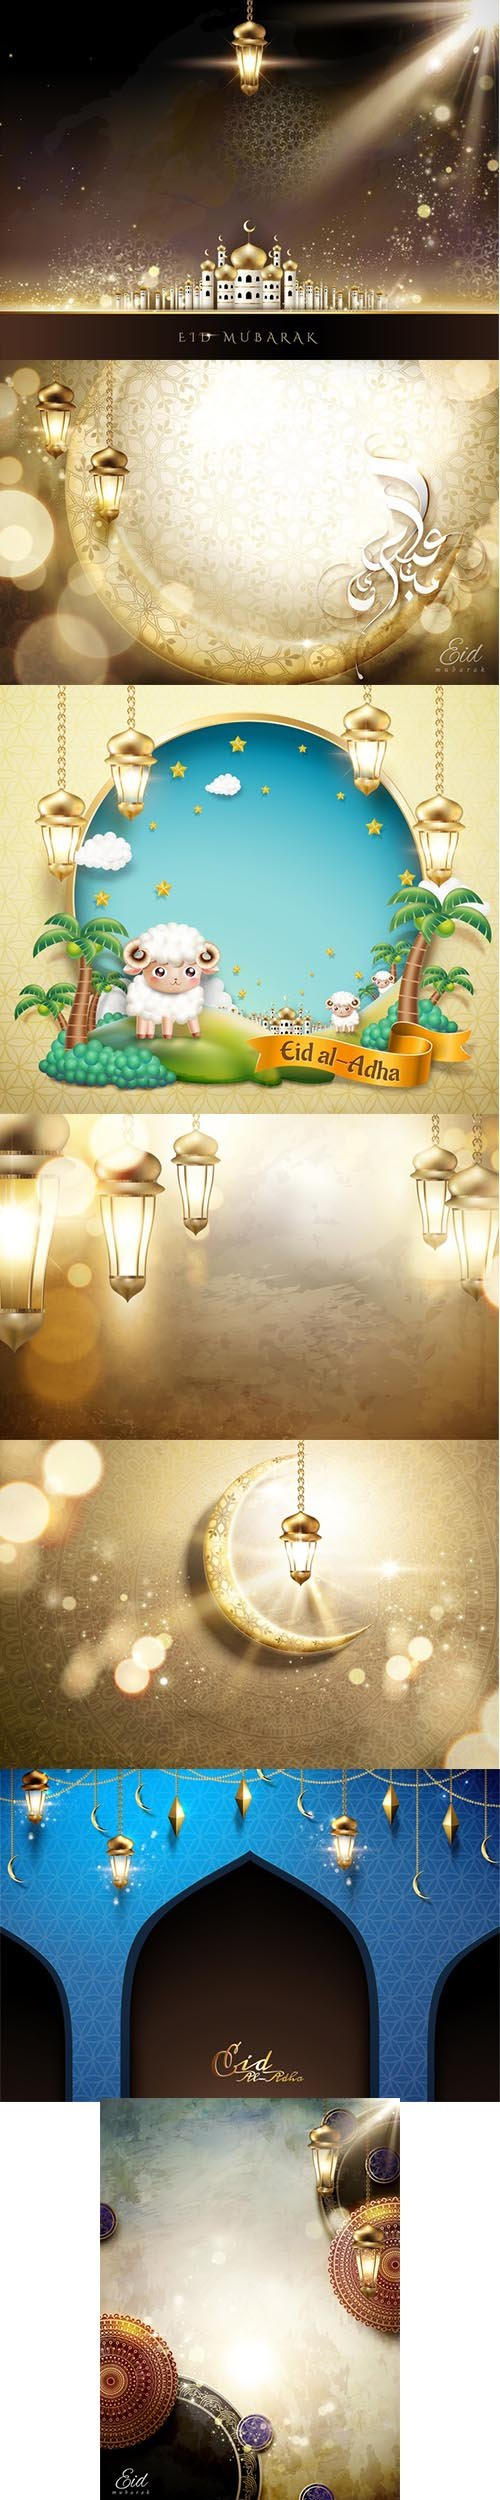 Eid al adha design with hanging lanterns